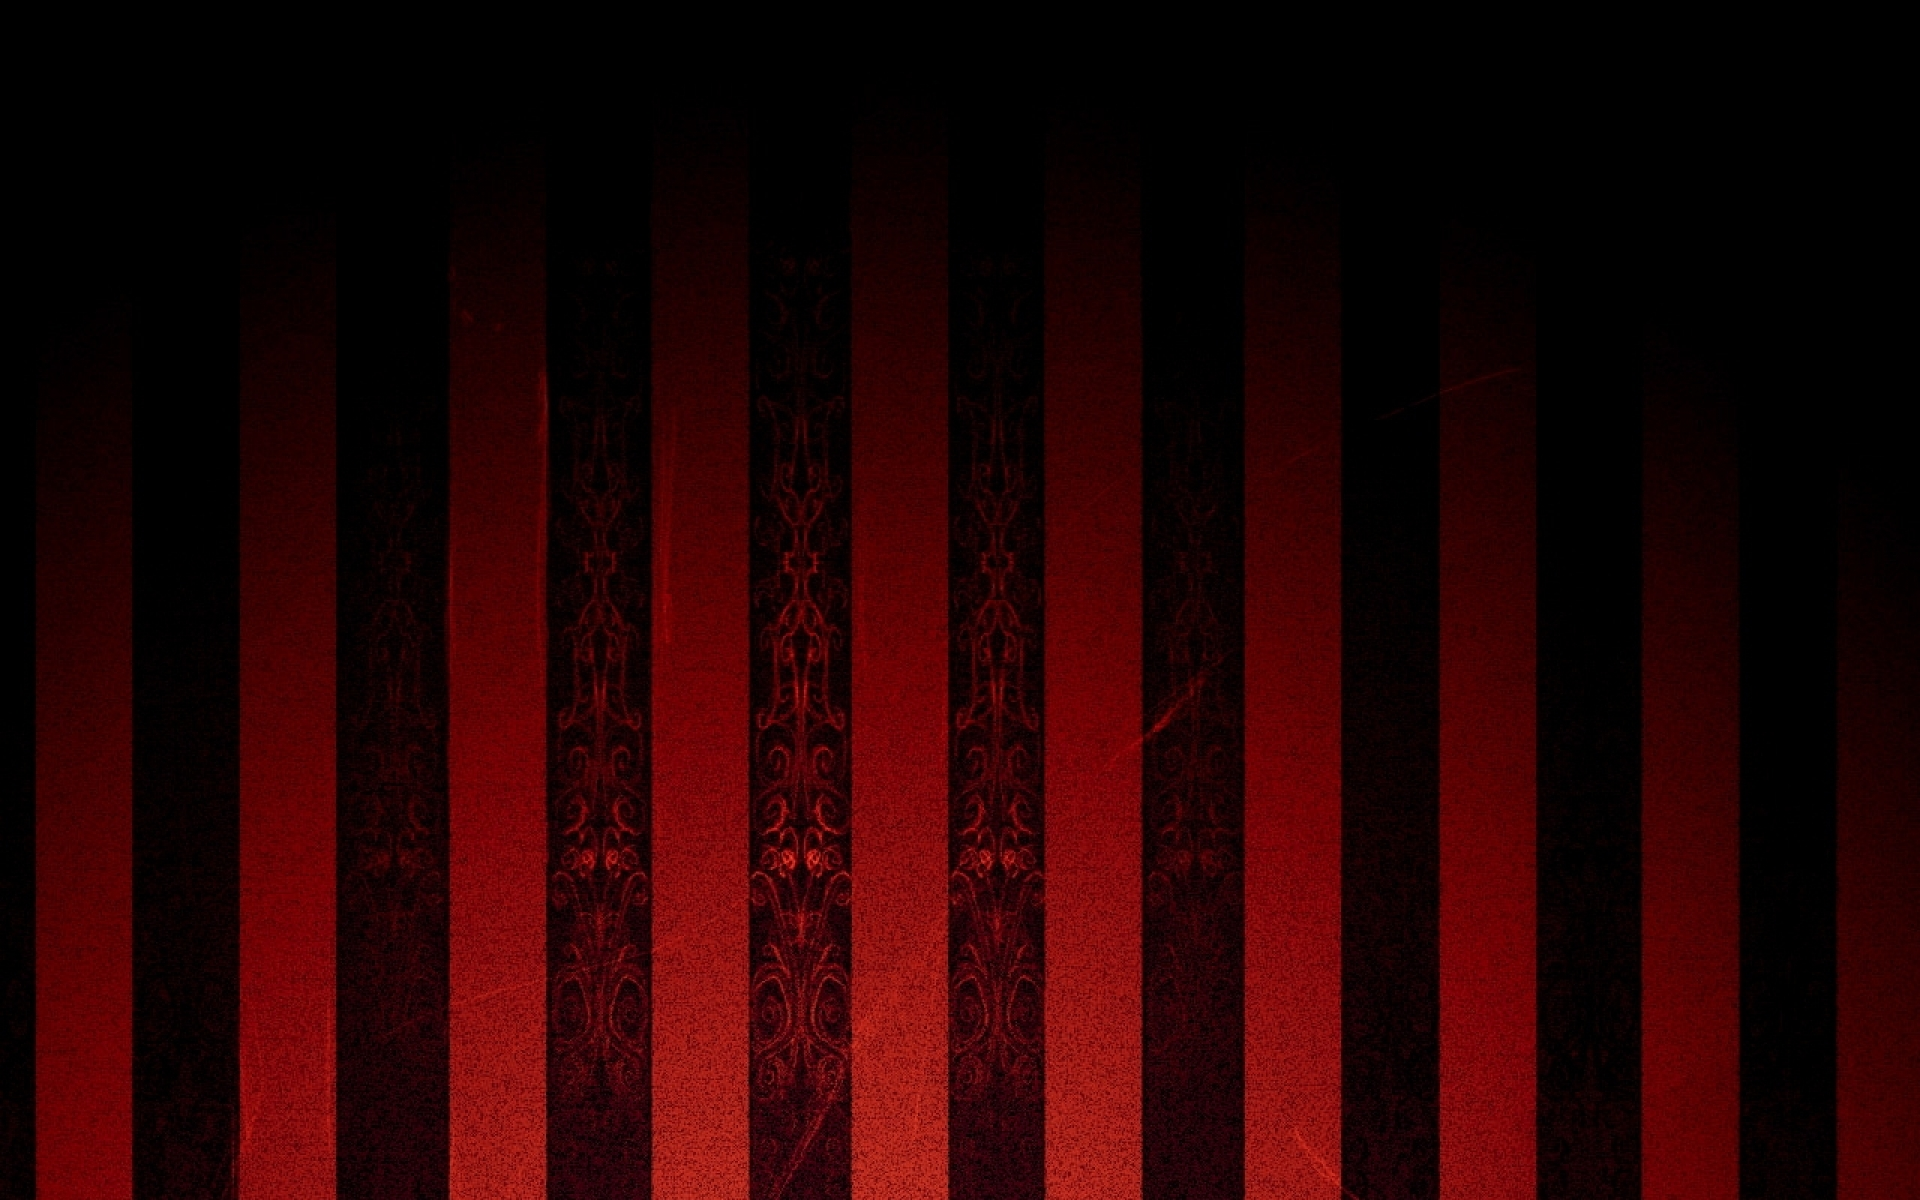 Hd wallpaper red and black - Hd Wallpaper Red And Black 22